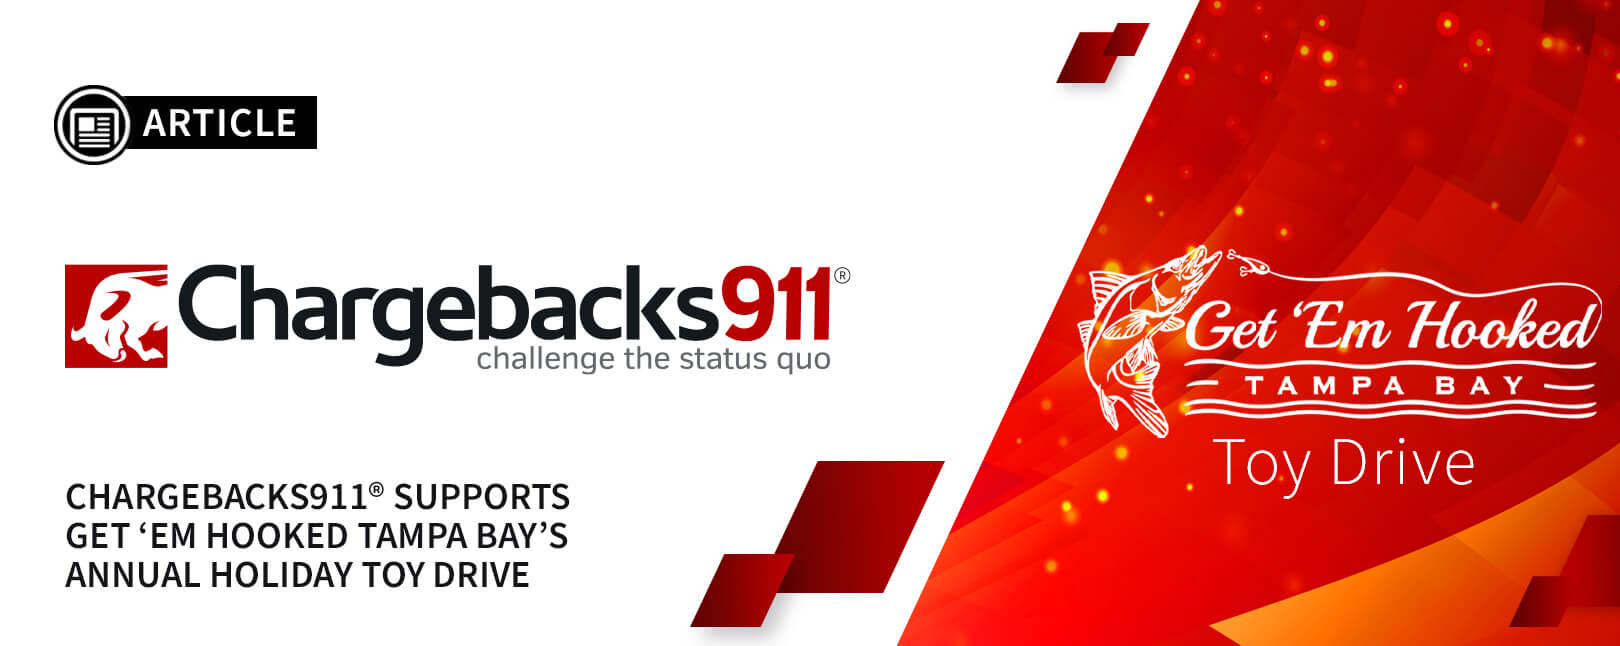 Chargebacks911® Participates in 2020 Holiday Toy Drive